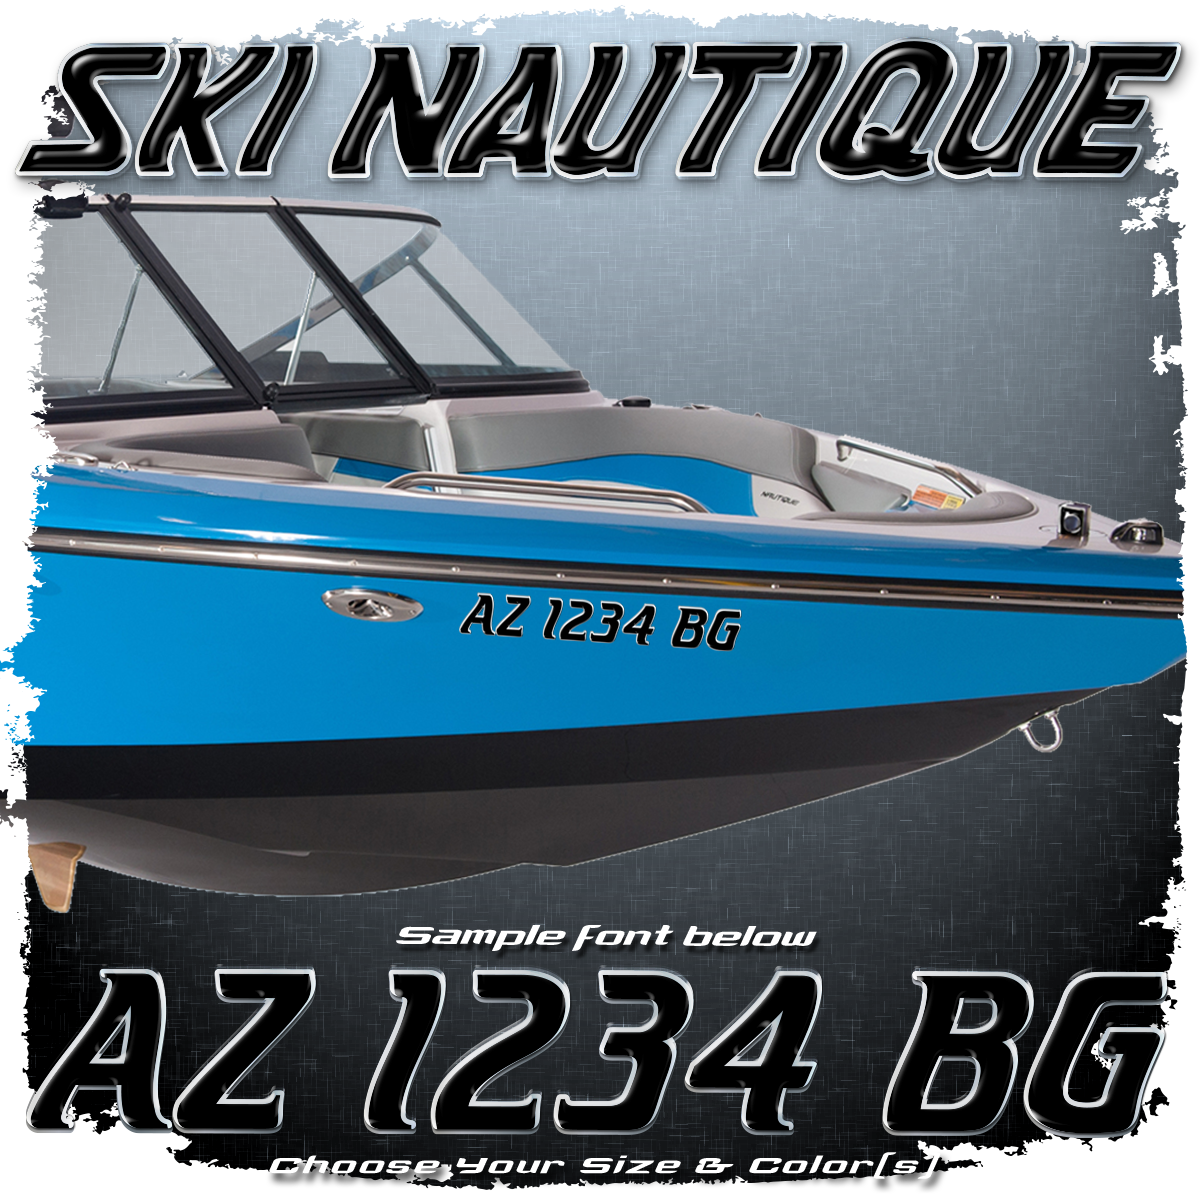 Ski Nautique Registration, 1980-01, Choose Your Own Colors (2 included)